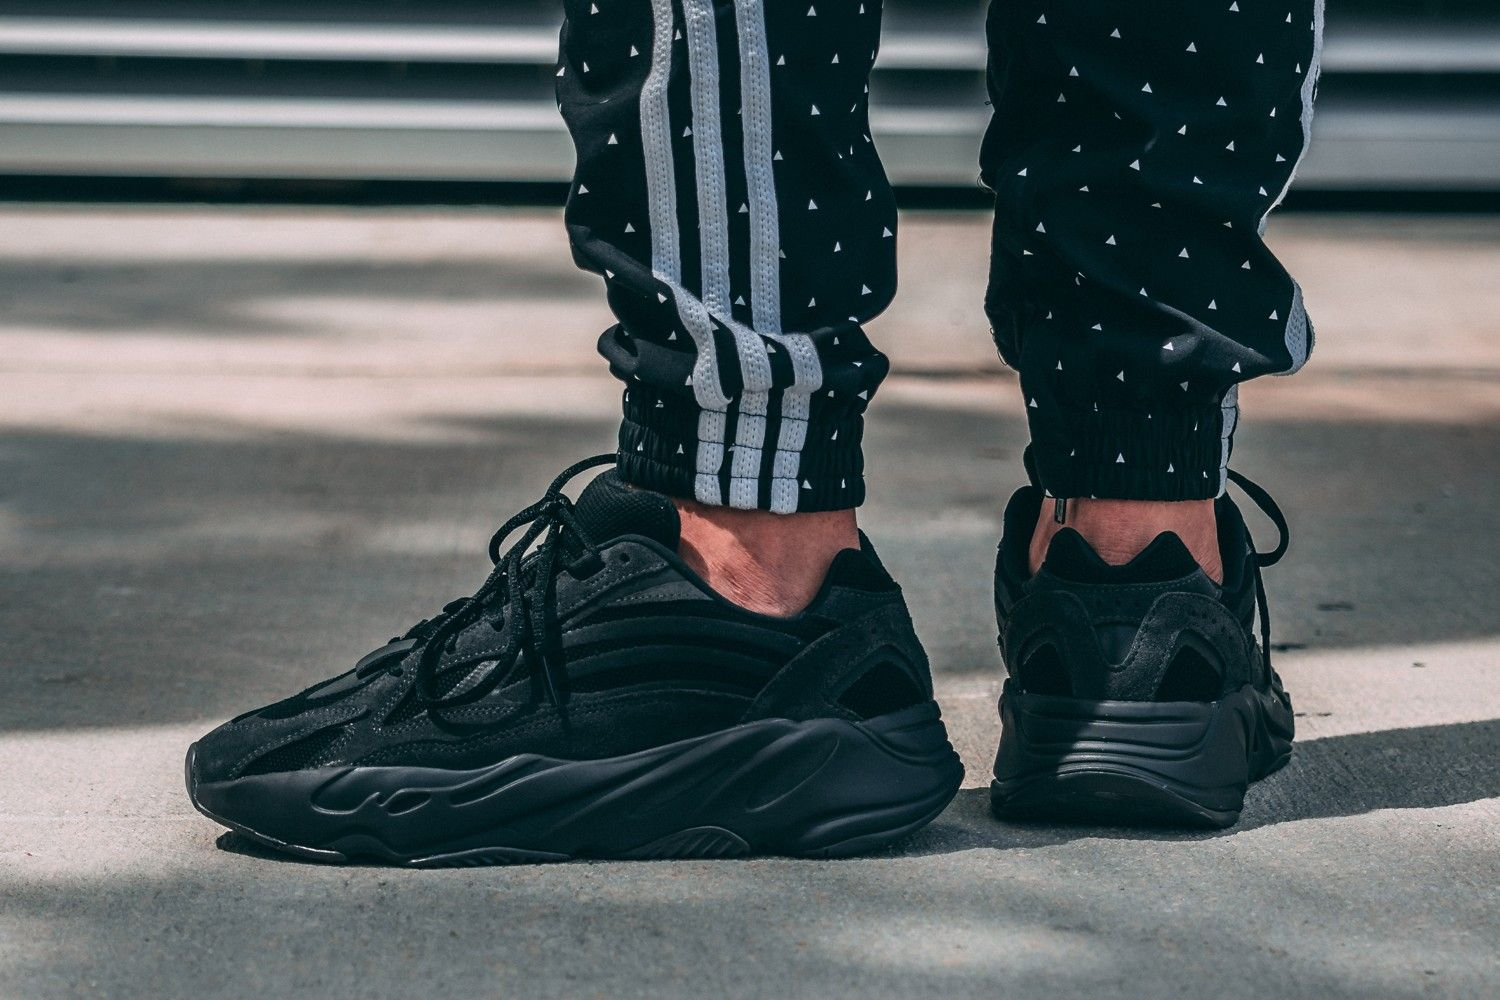 On Foot Adidas Yeezy Boost 700 V2 Vanta Eukicks Leather Shoes Woman Adidas Yeezy Boost Yeezy